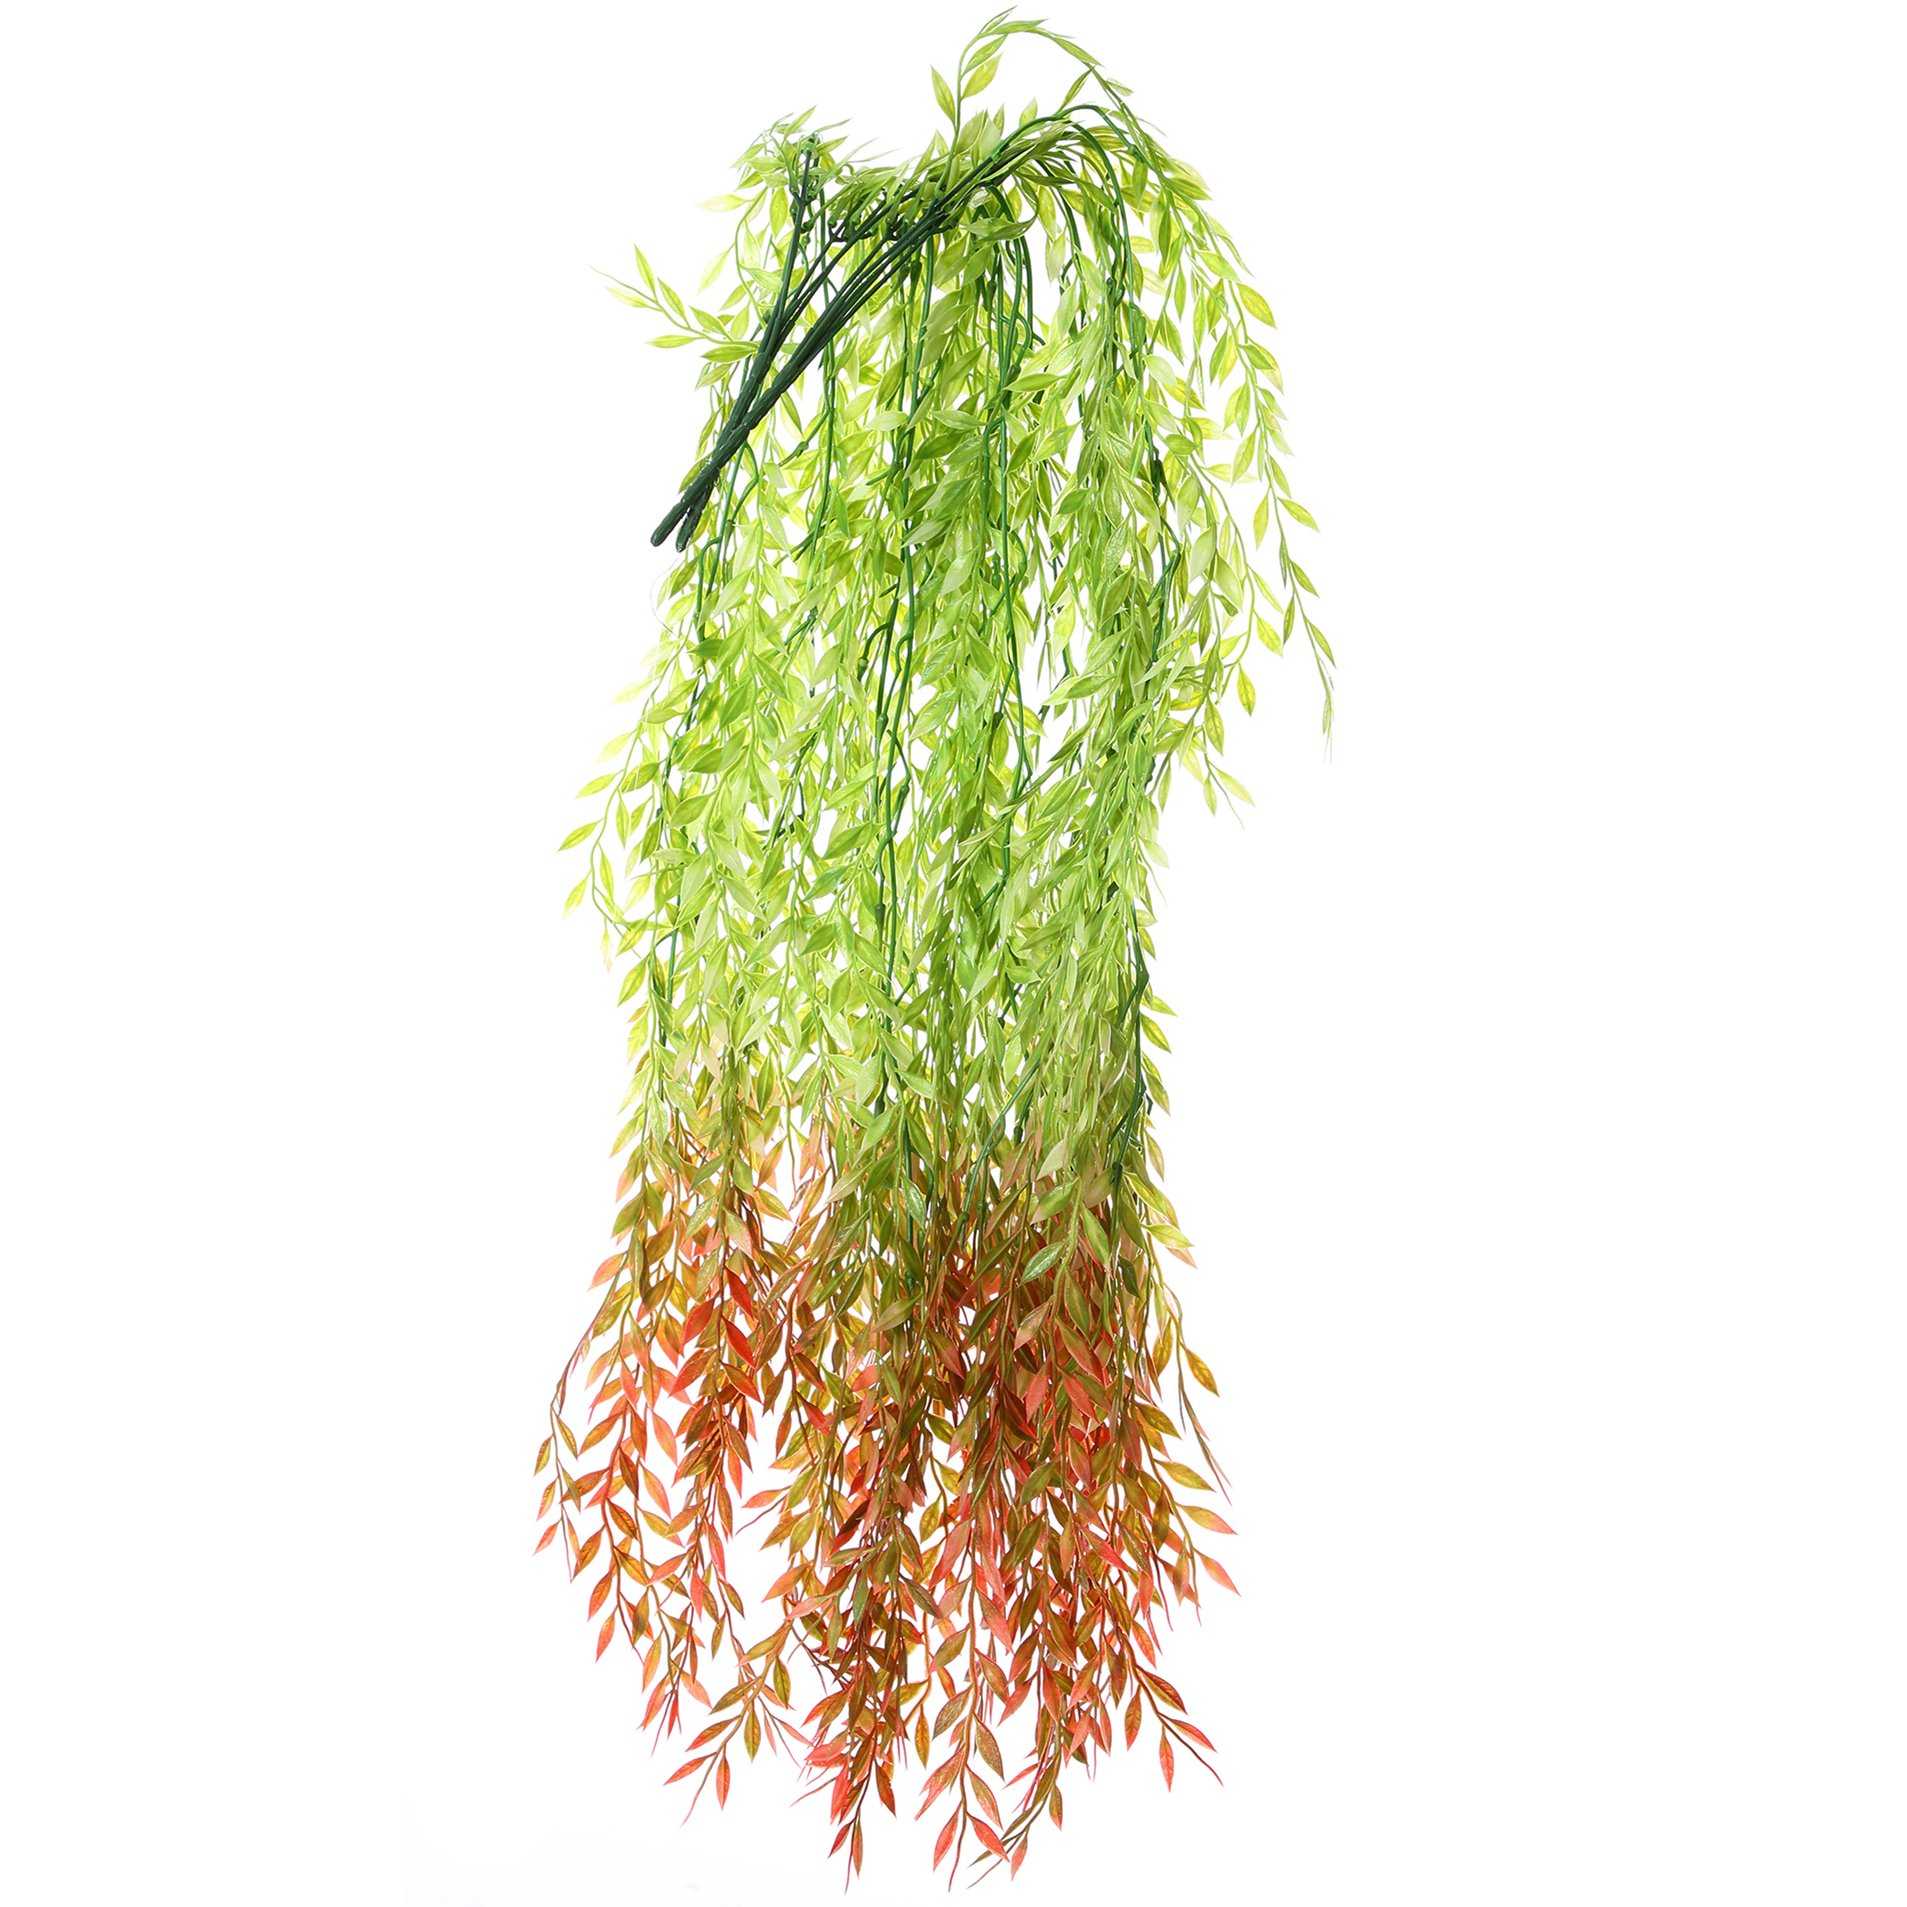 Felice Arts 2pcs 6.2 FT Artificial Vine Greenery Garland Real Touch Willow Rattan Wicker Twig Fake Garden Wedding Festival Windowsill Balcony Courtyard Decor, Red & Green